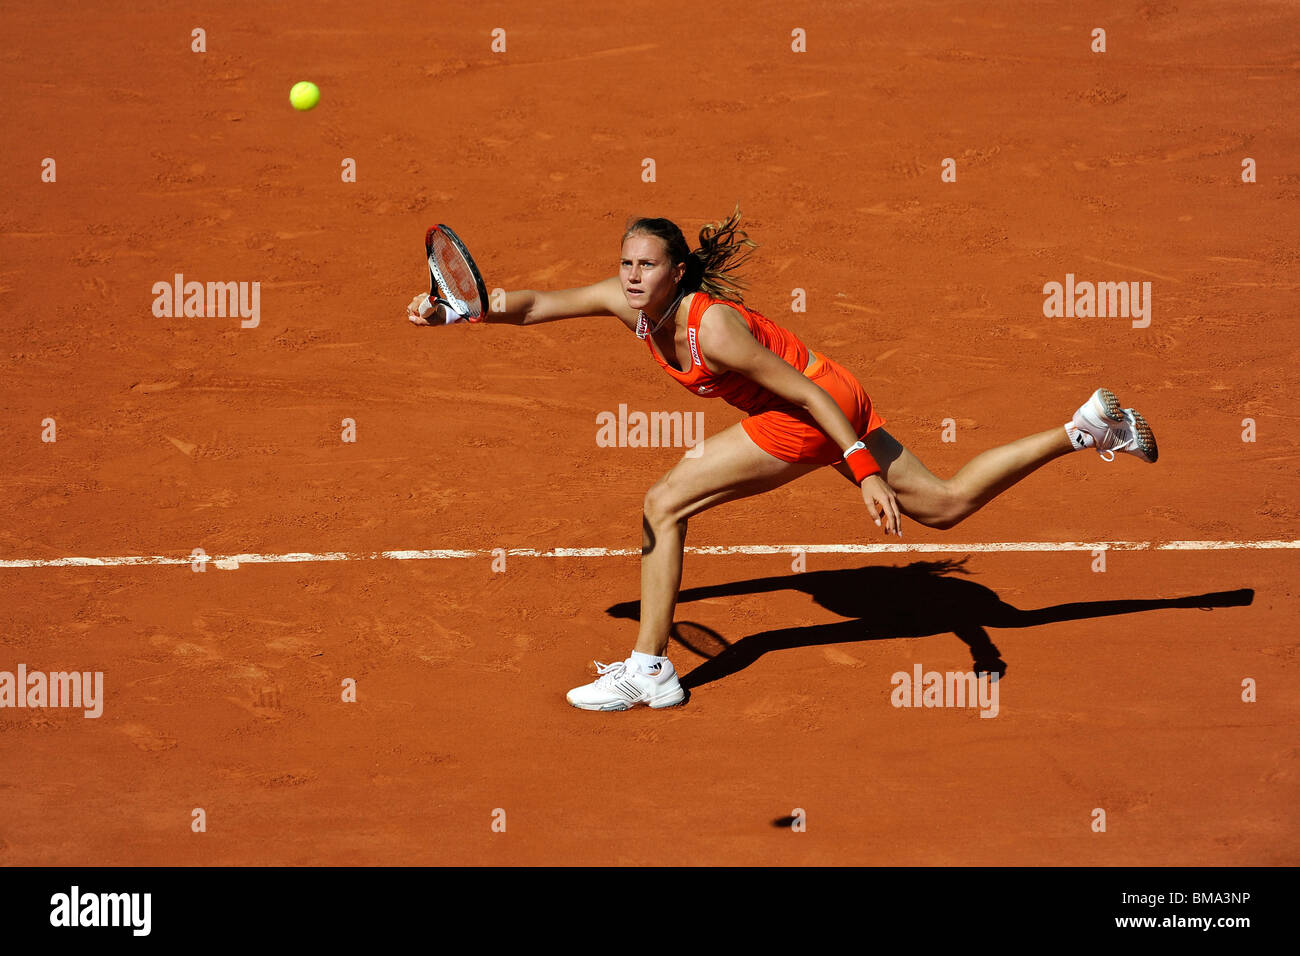 Stefanie Voegele (SWI) competing at the 2010 French Open - Stock Image